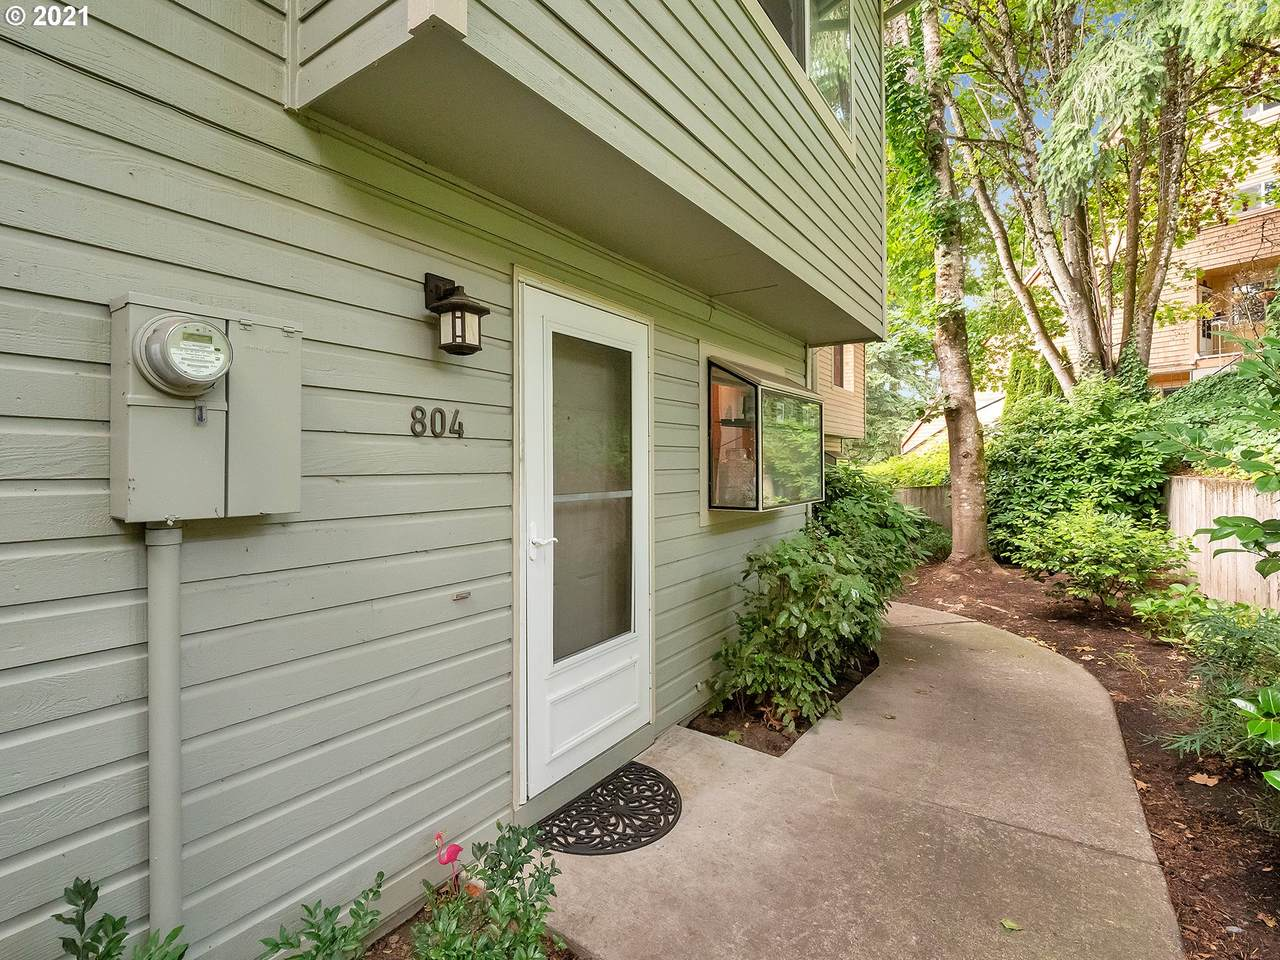 3433 Mcnary Pkwy - Photo 1